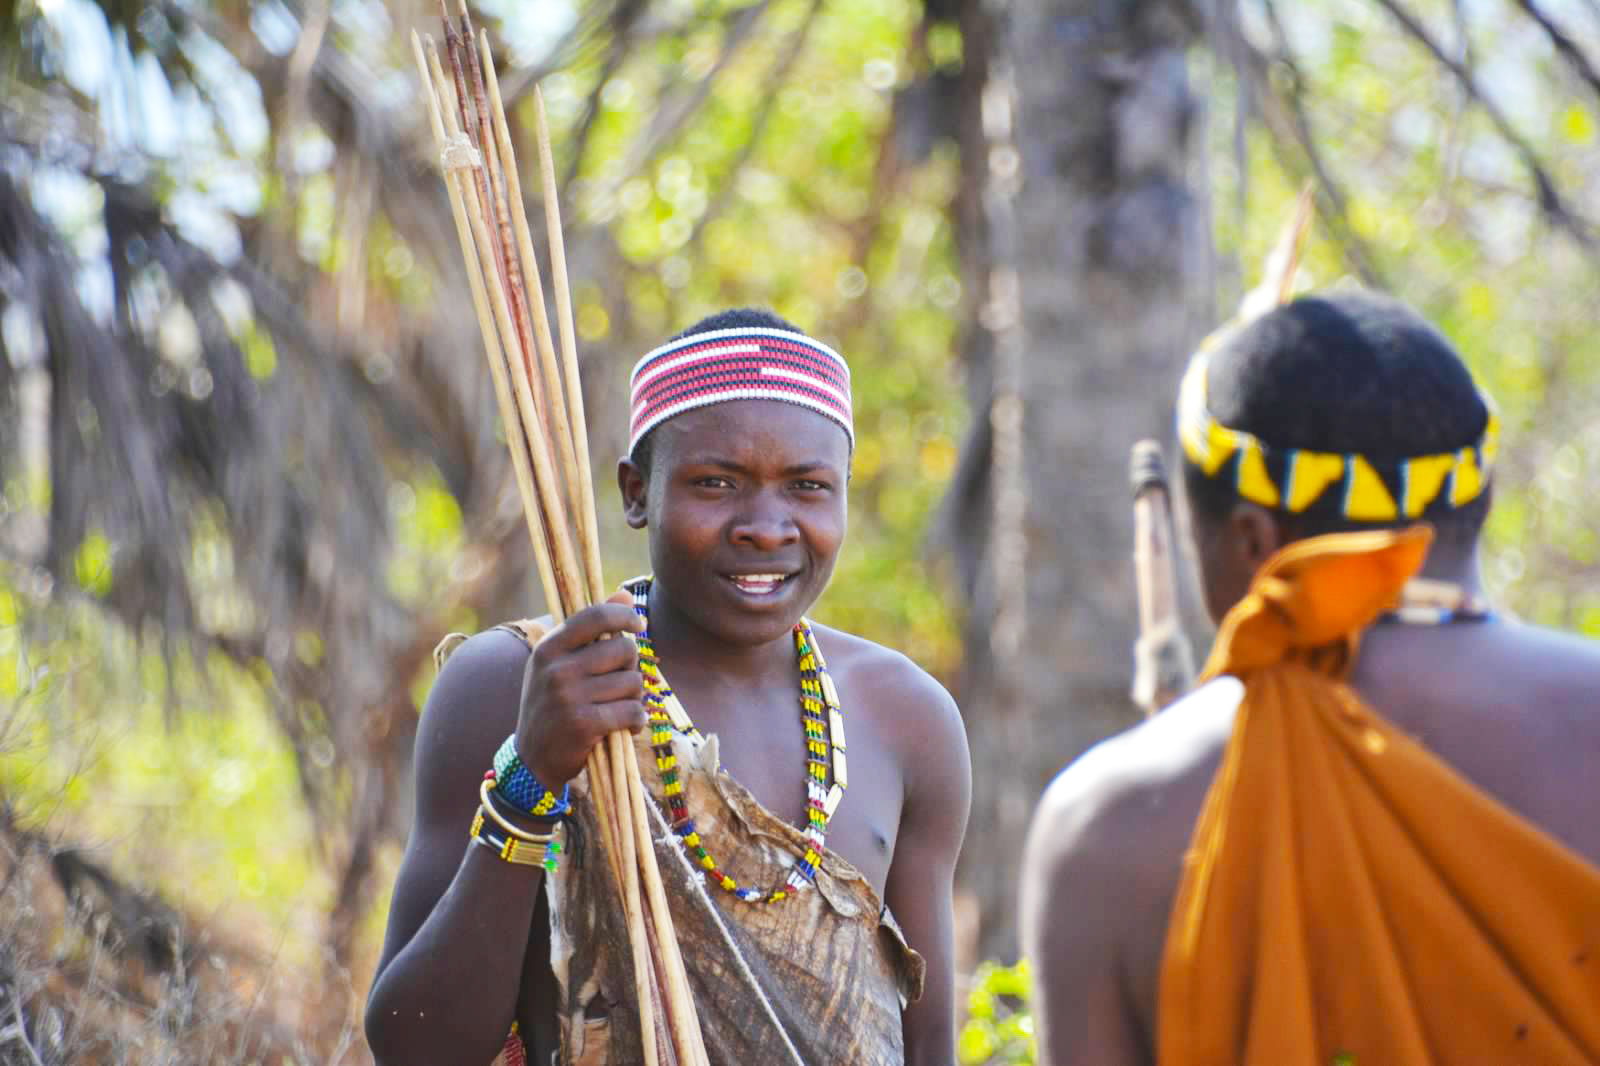 Encounter with the Hadza